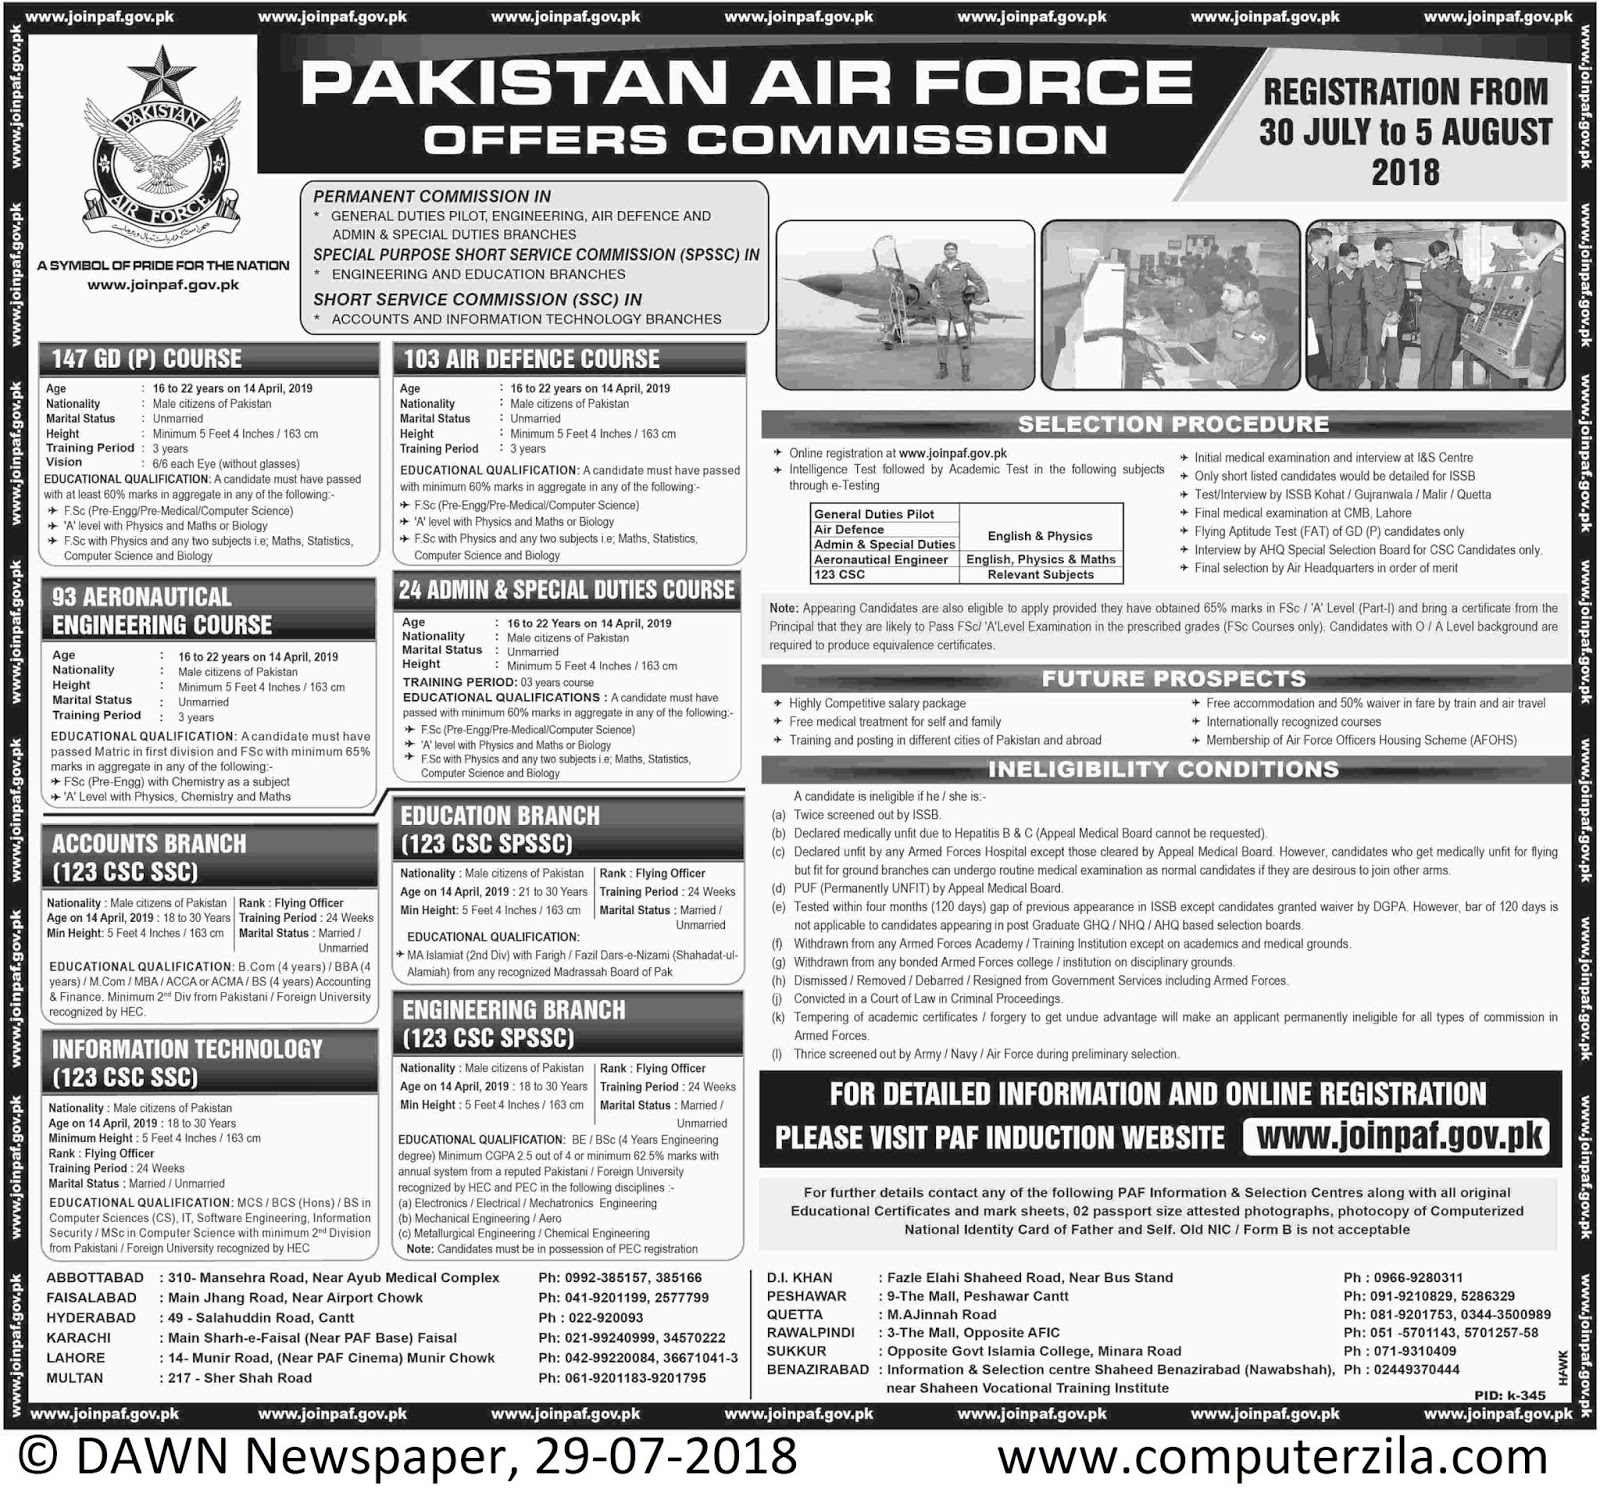 PAF Offers Commission at Pakistan Air Force